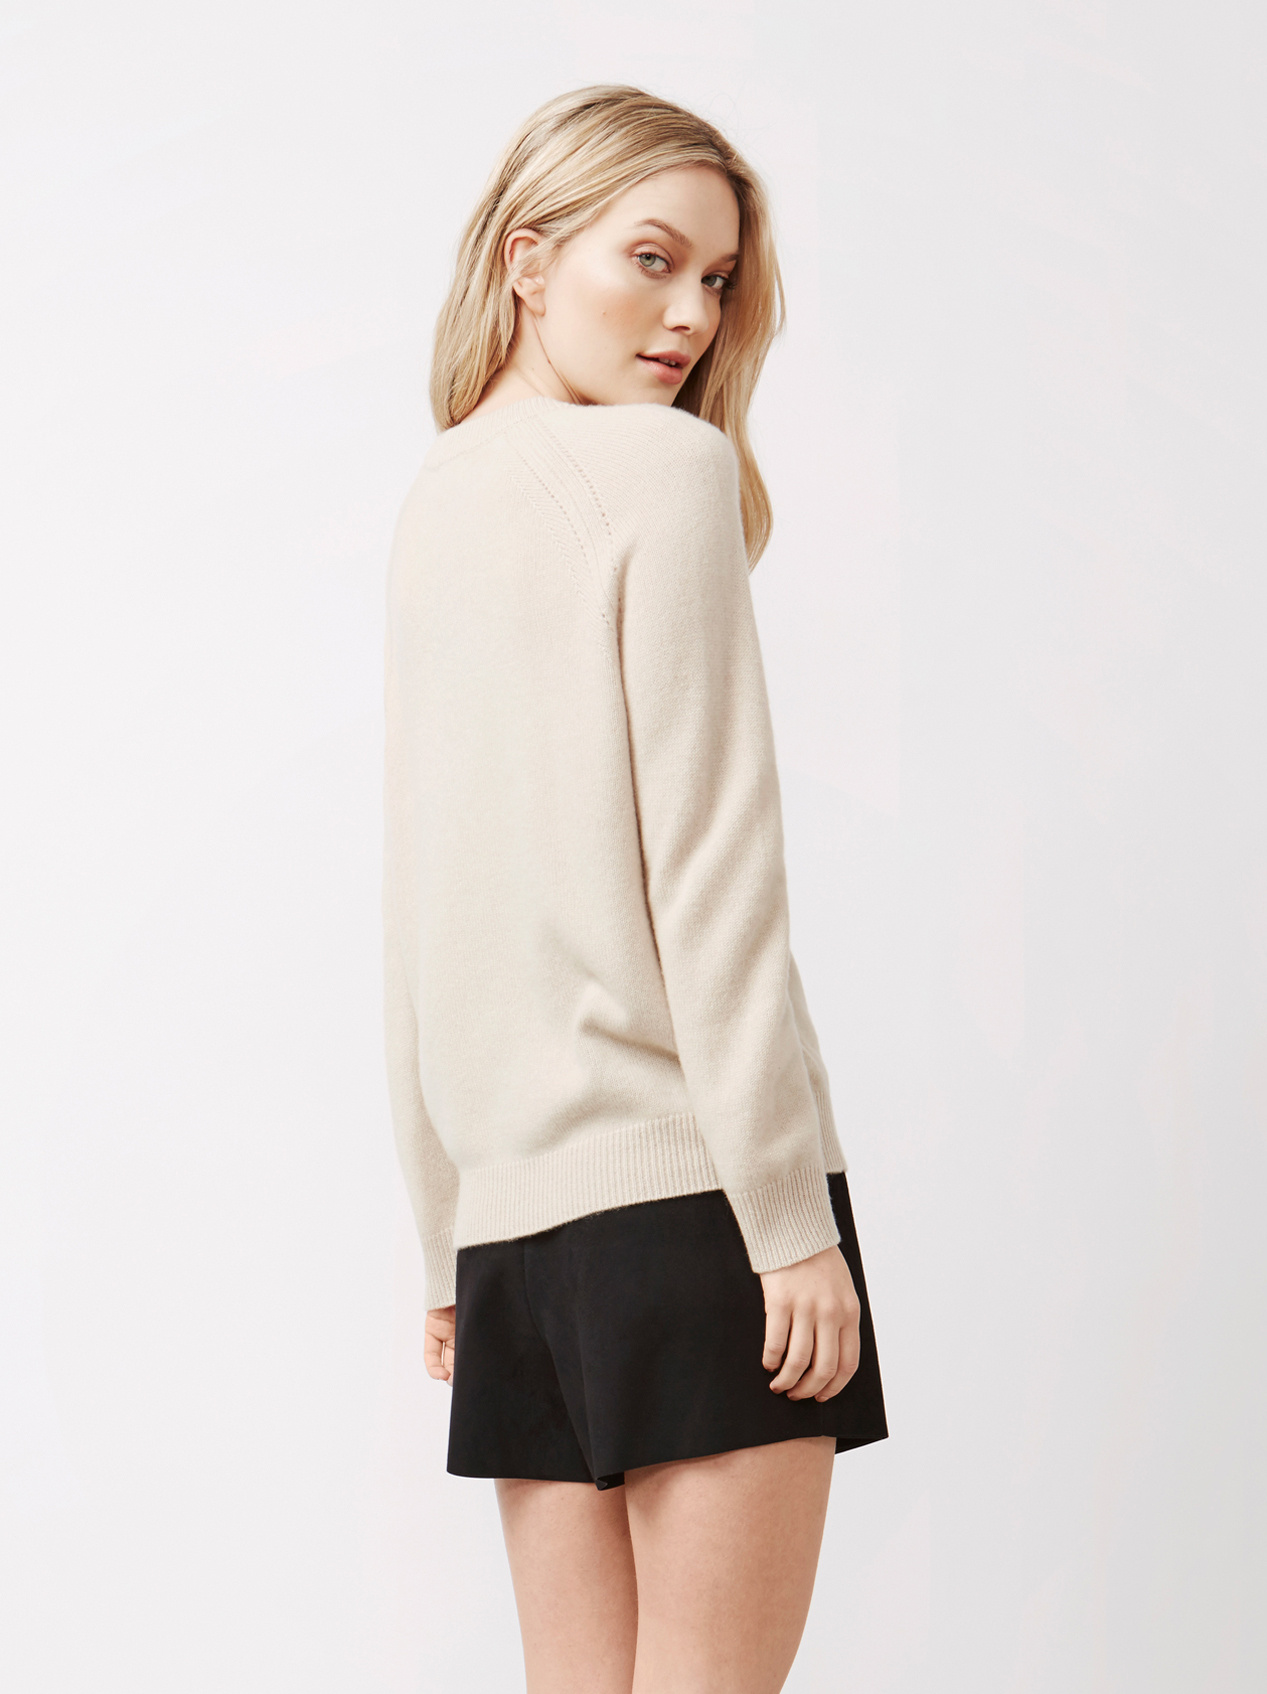 Soft Goat Women's Soft Sweater Beige